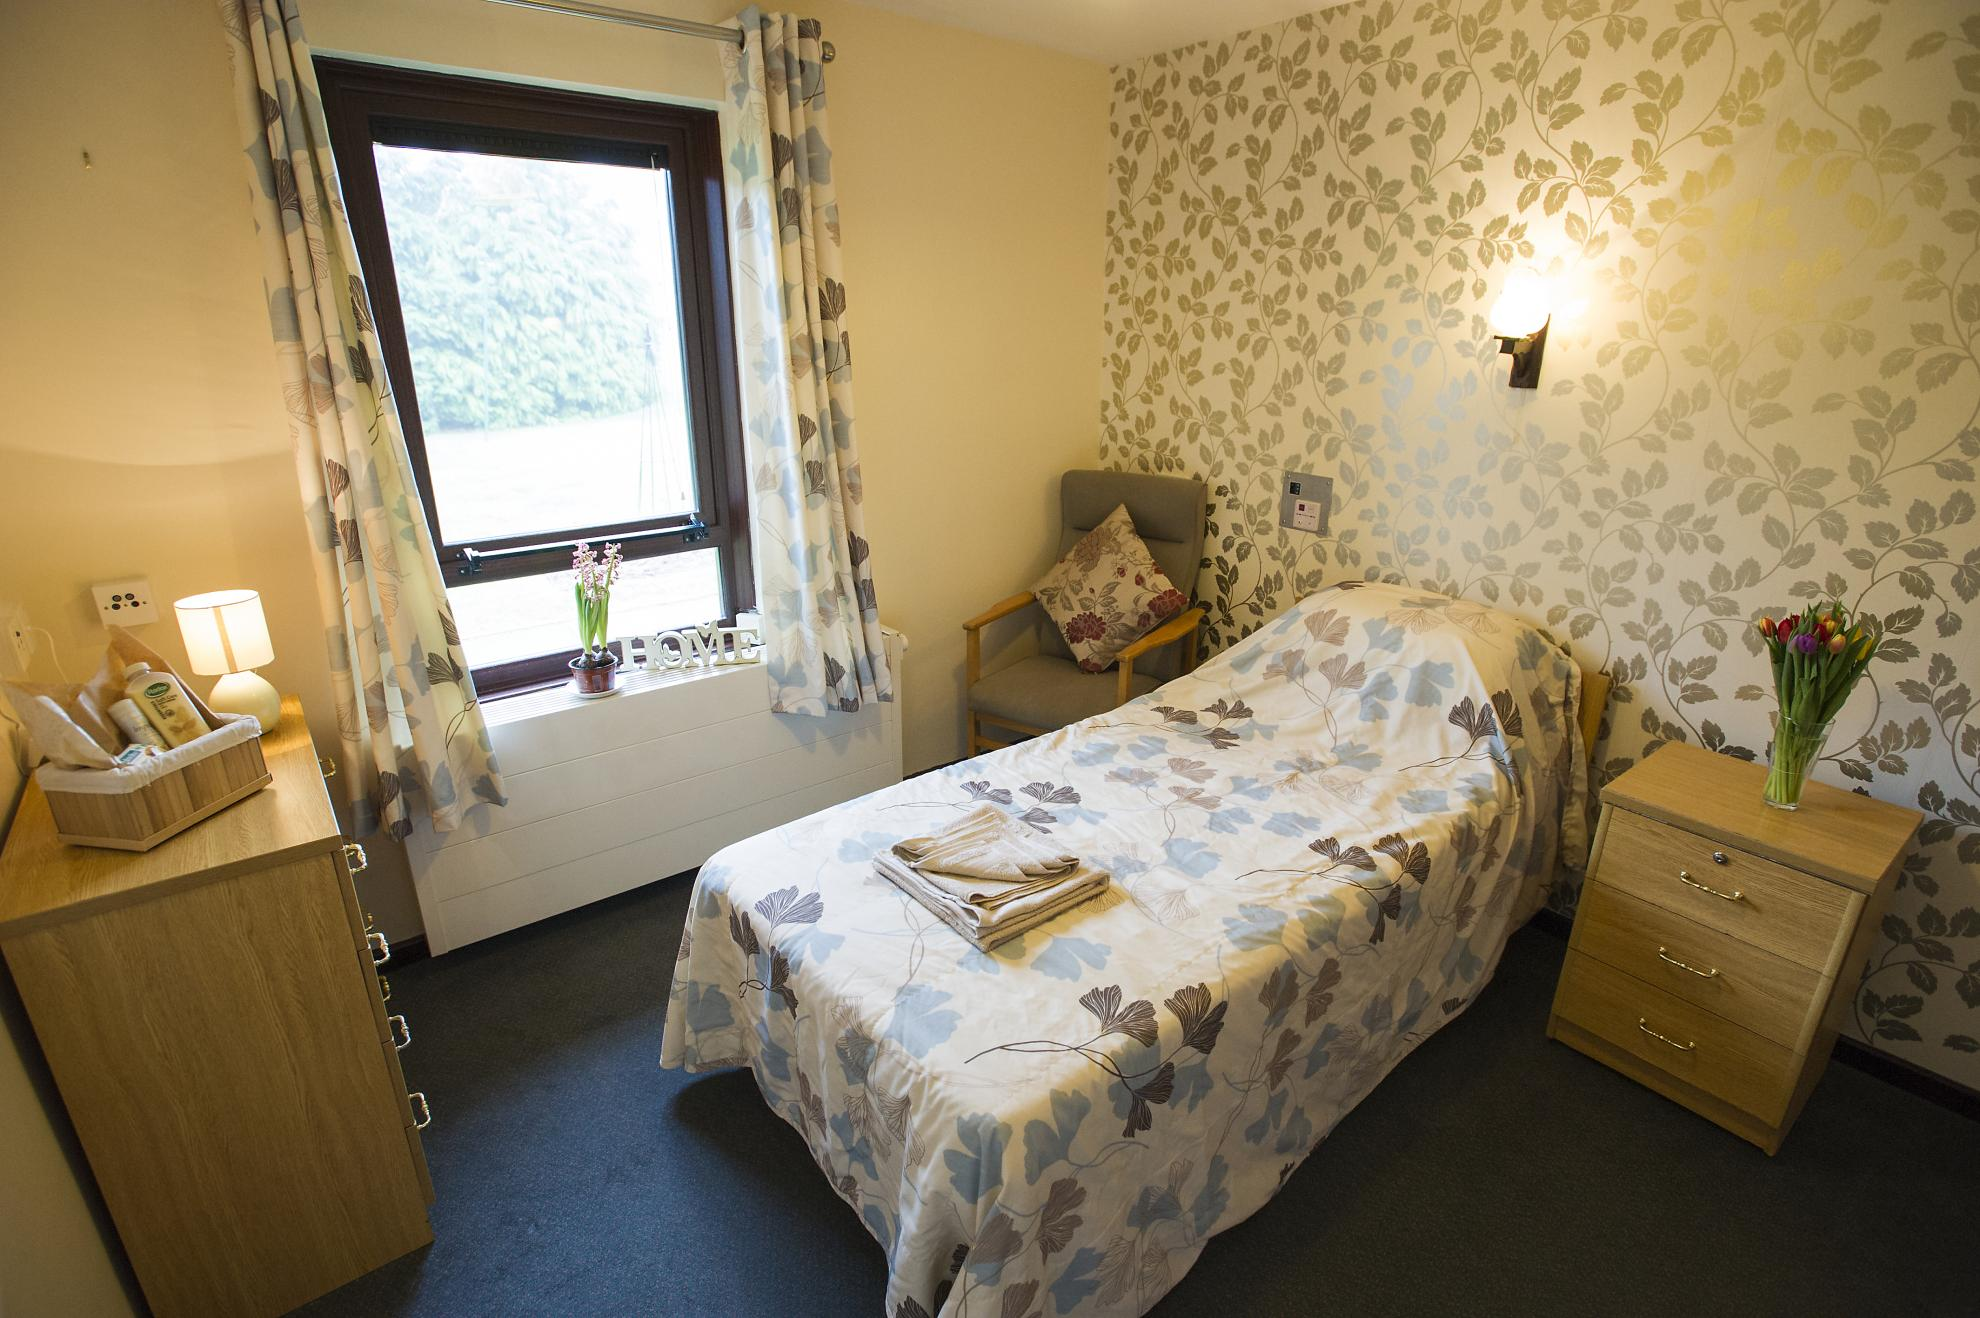 Beechwood residential care home upton upon severn for The beechwood